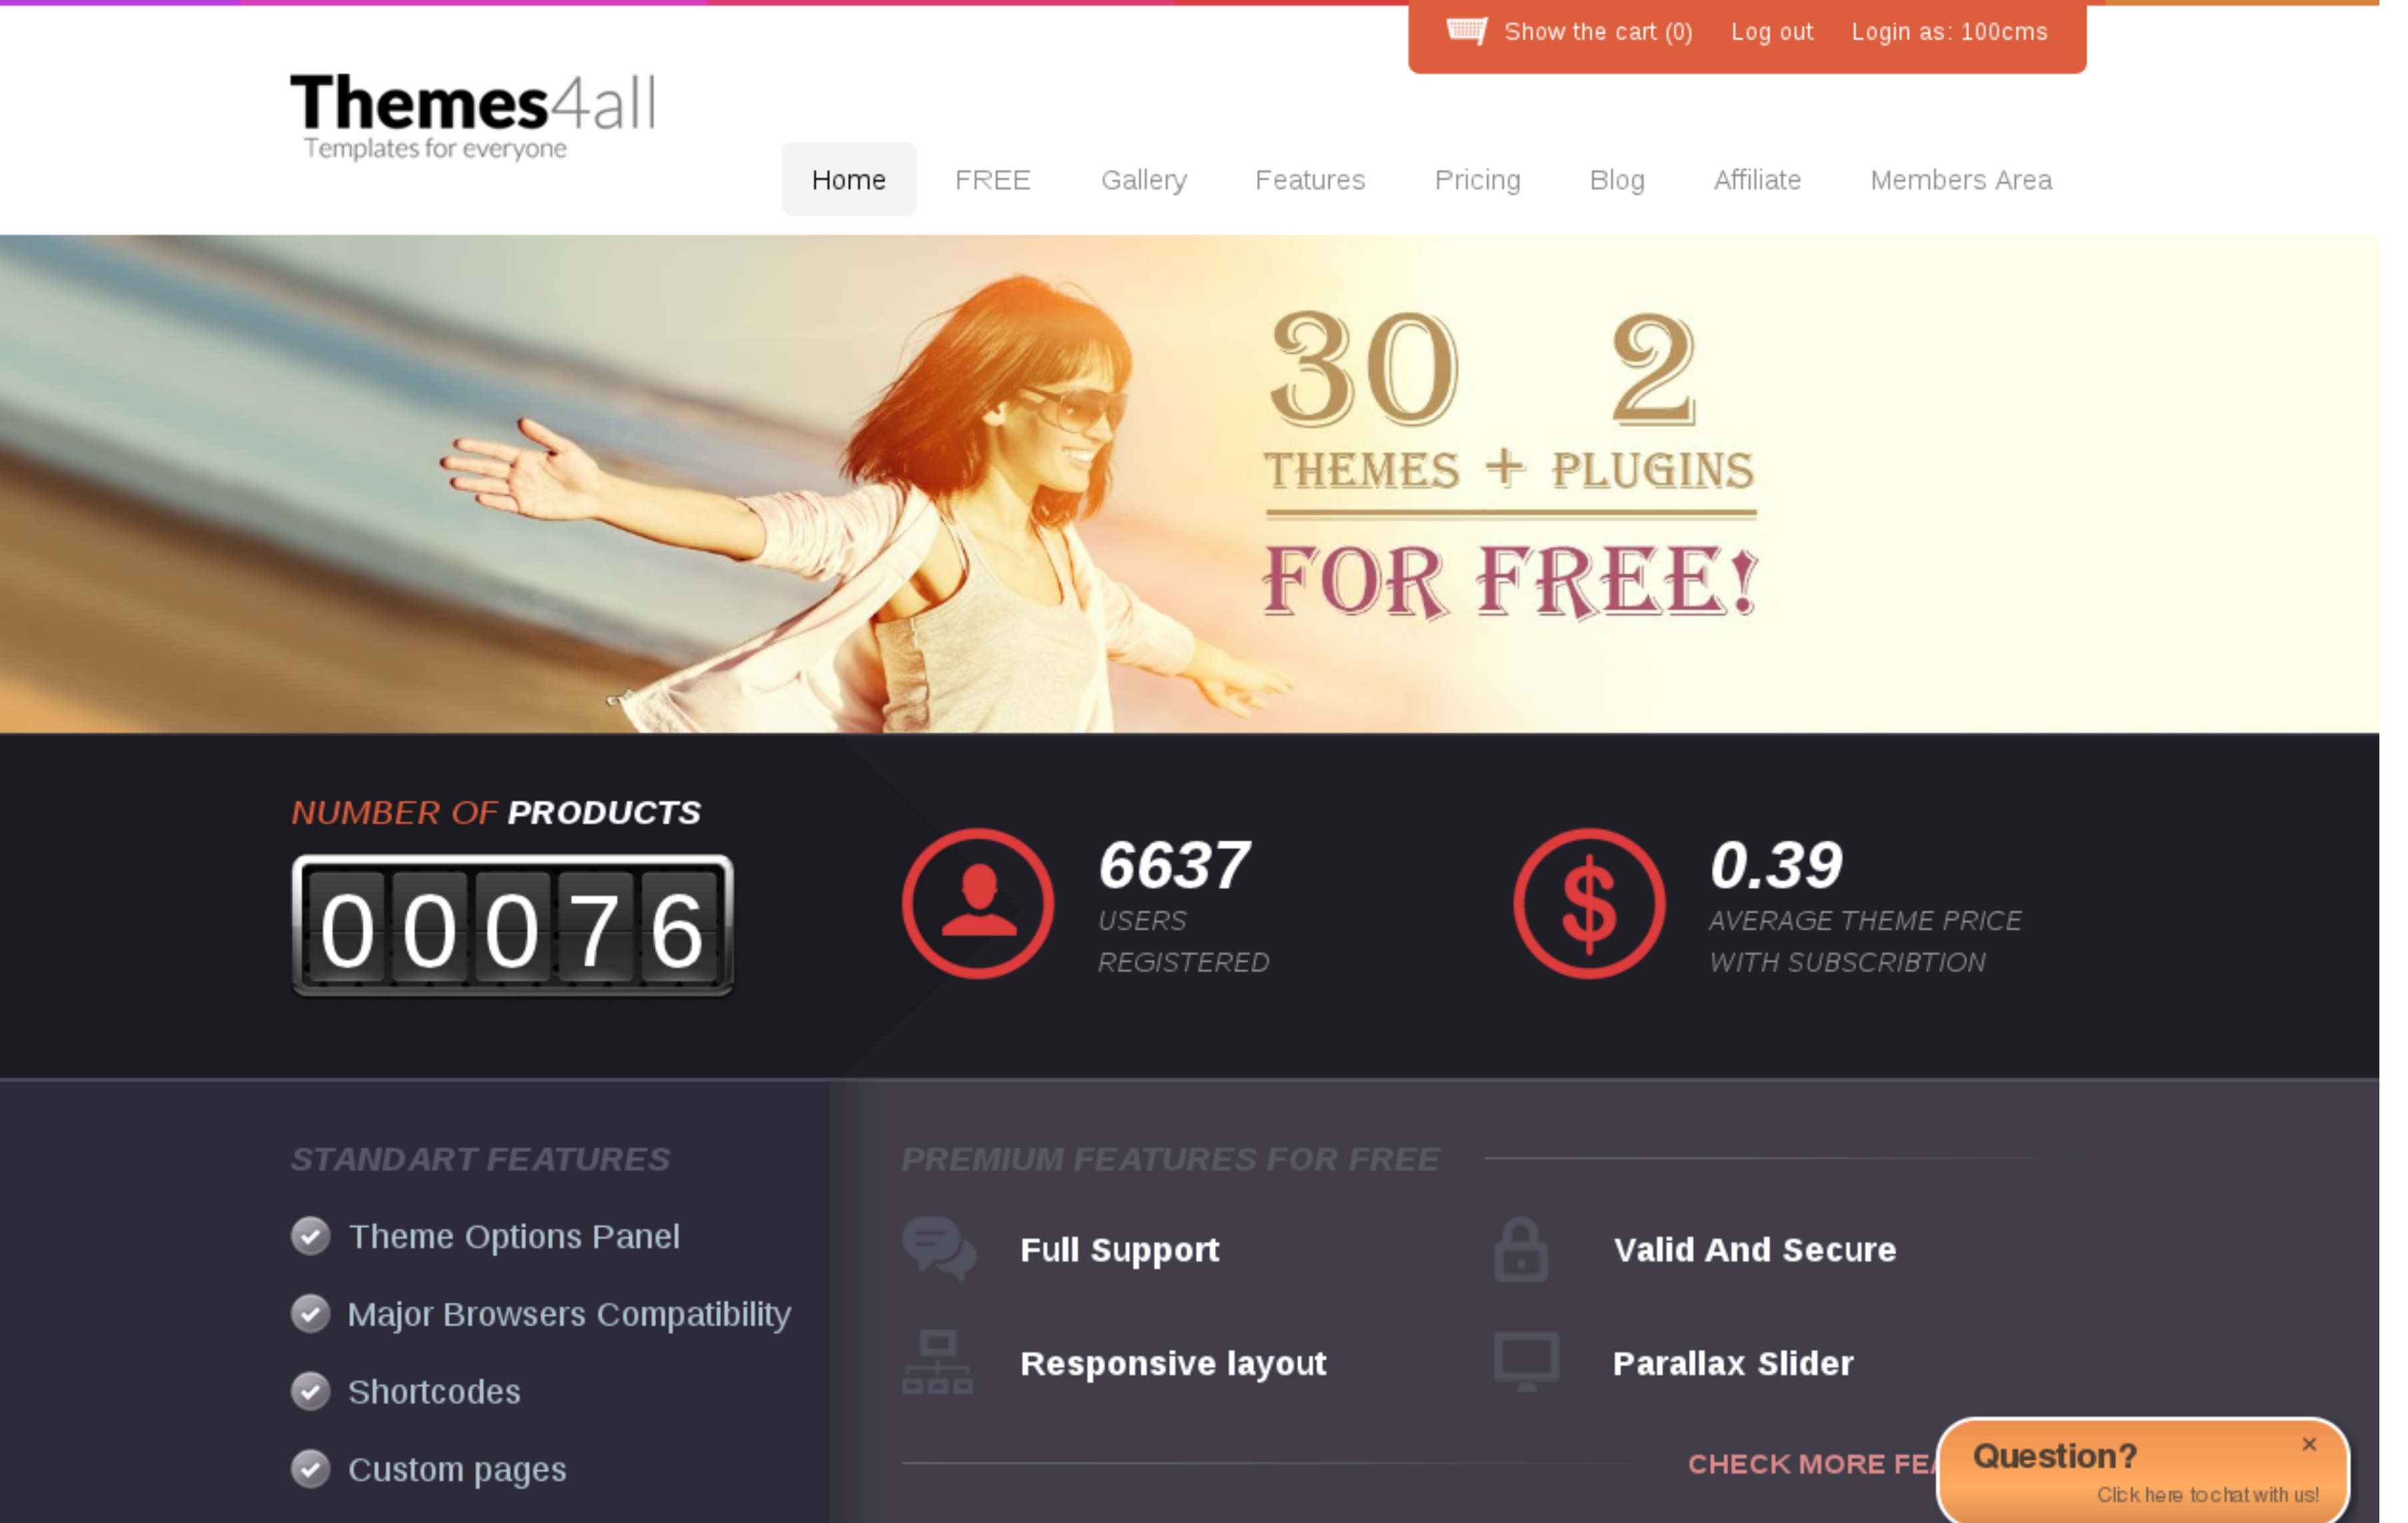 Themes4al WordPress Theme Club with free WordPress Themes and low prices for memberships